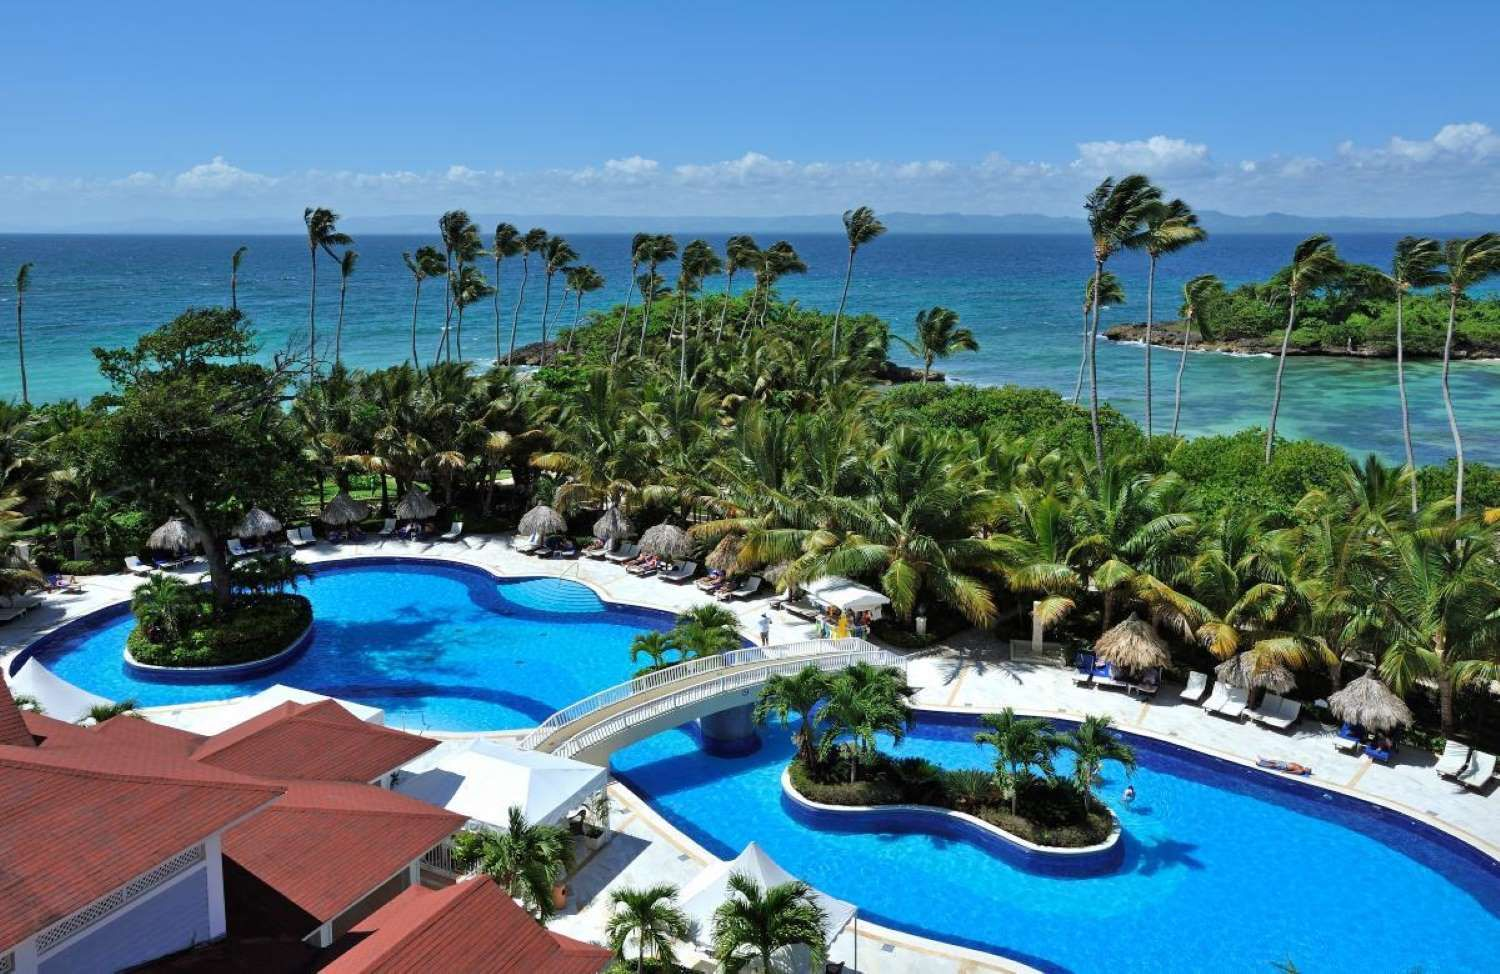 Cheap All Inclusive Resorts in the Caribbean: Budget